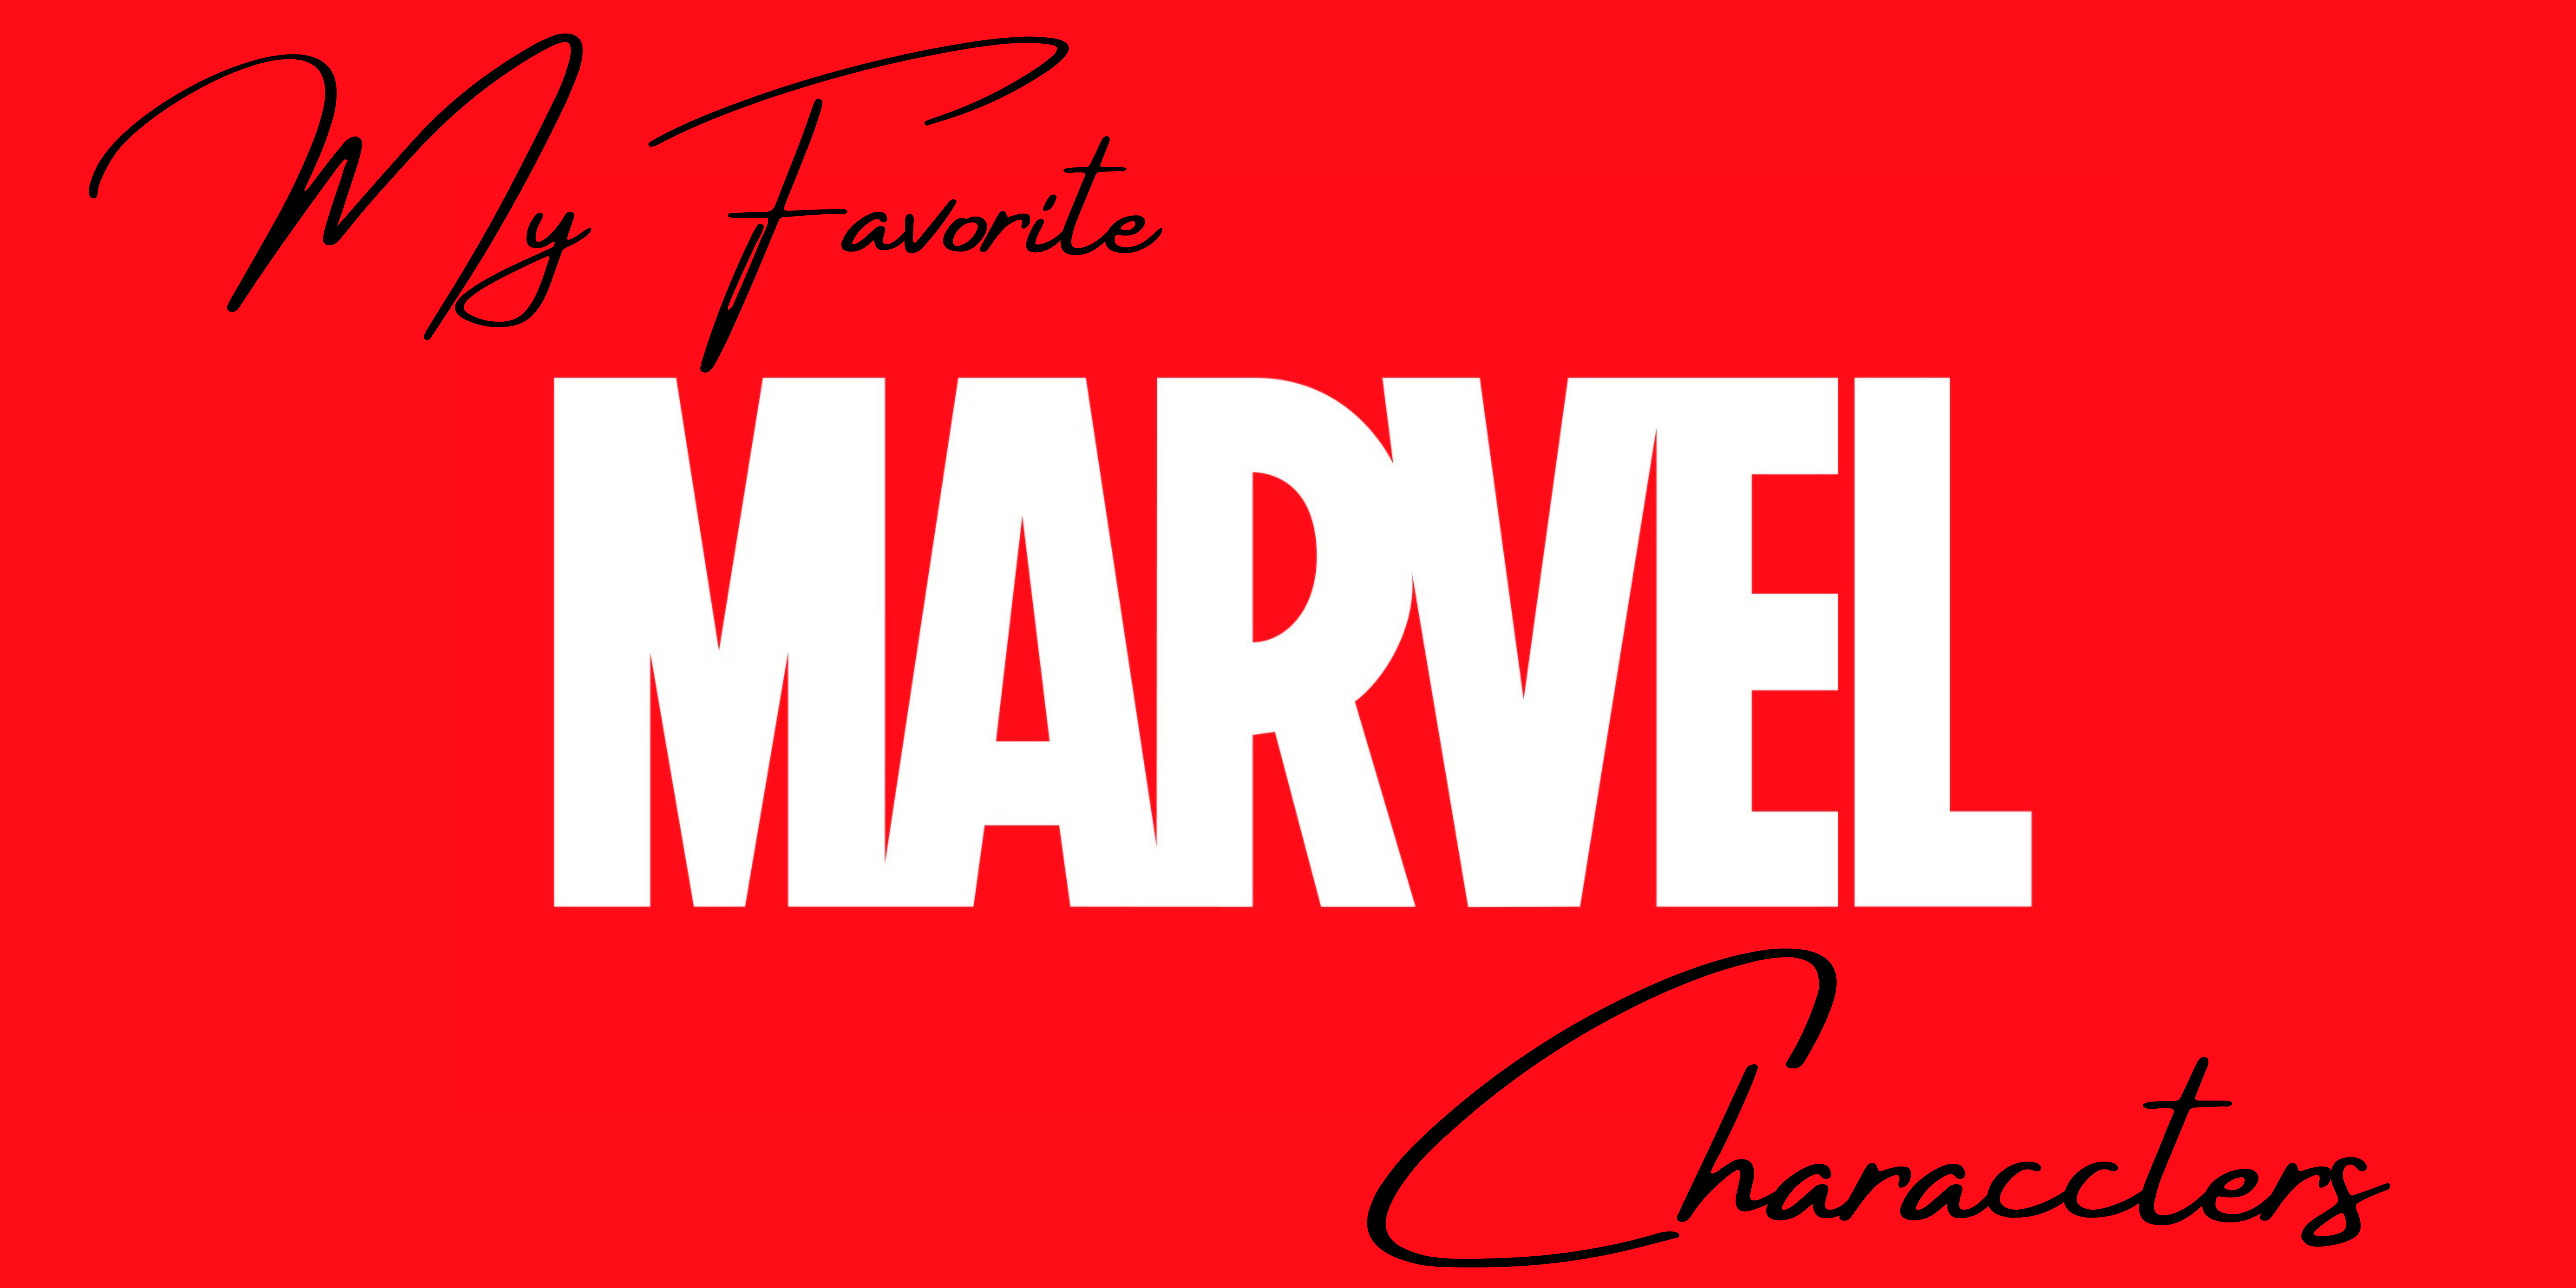 My Favorite Marvel Characters